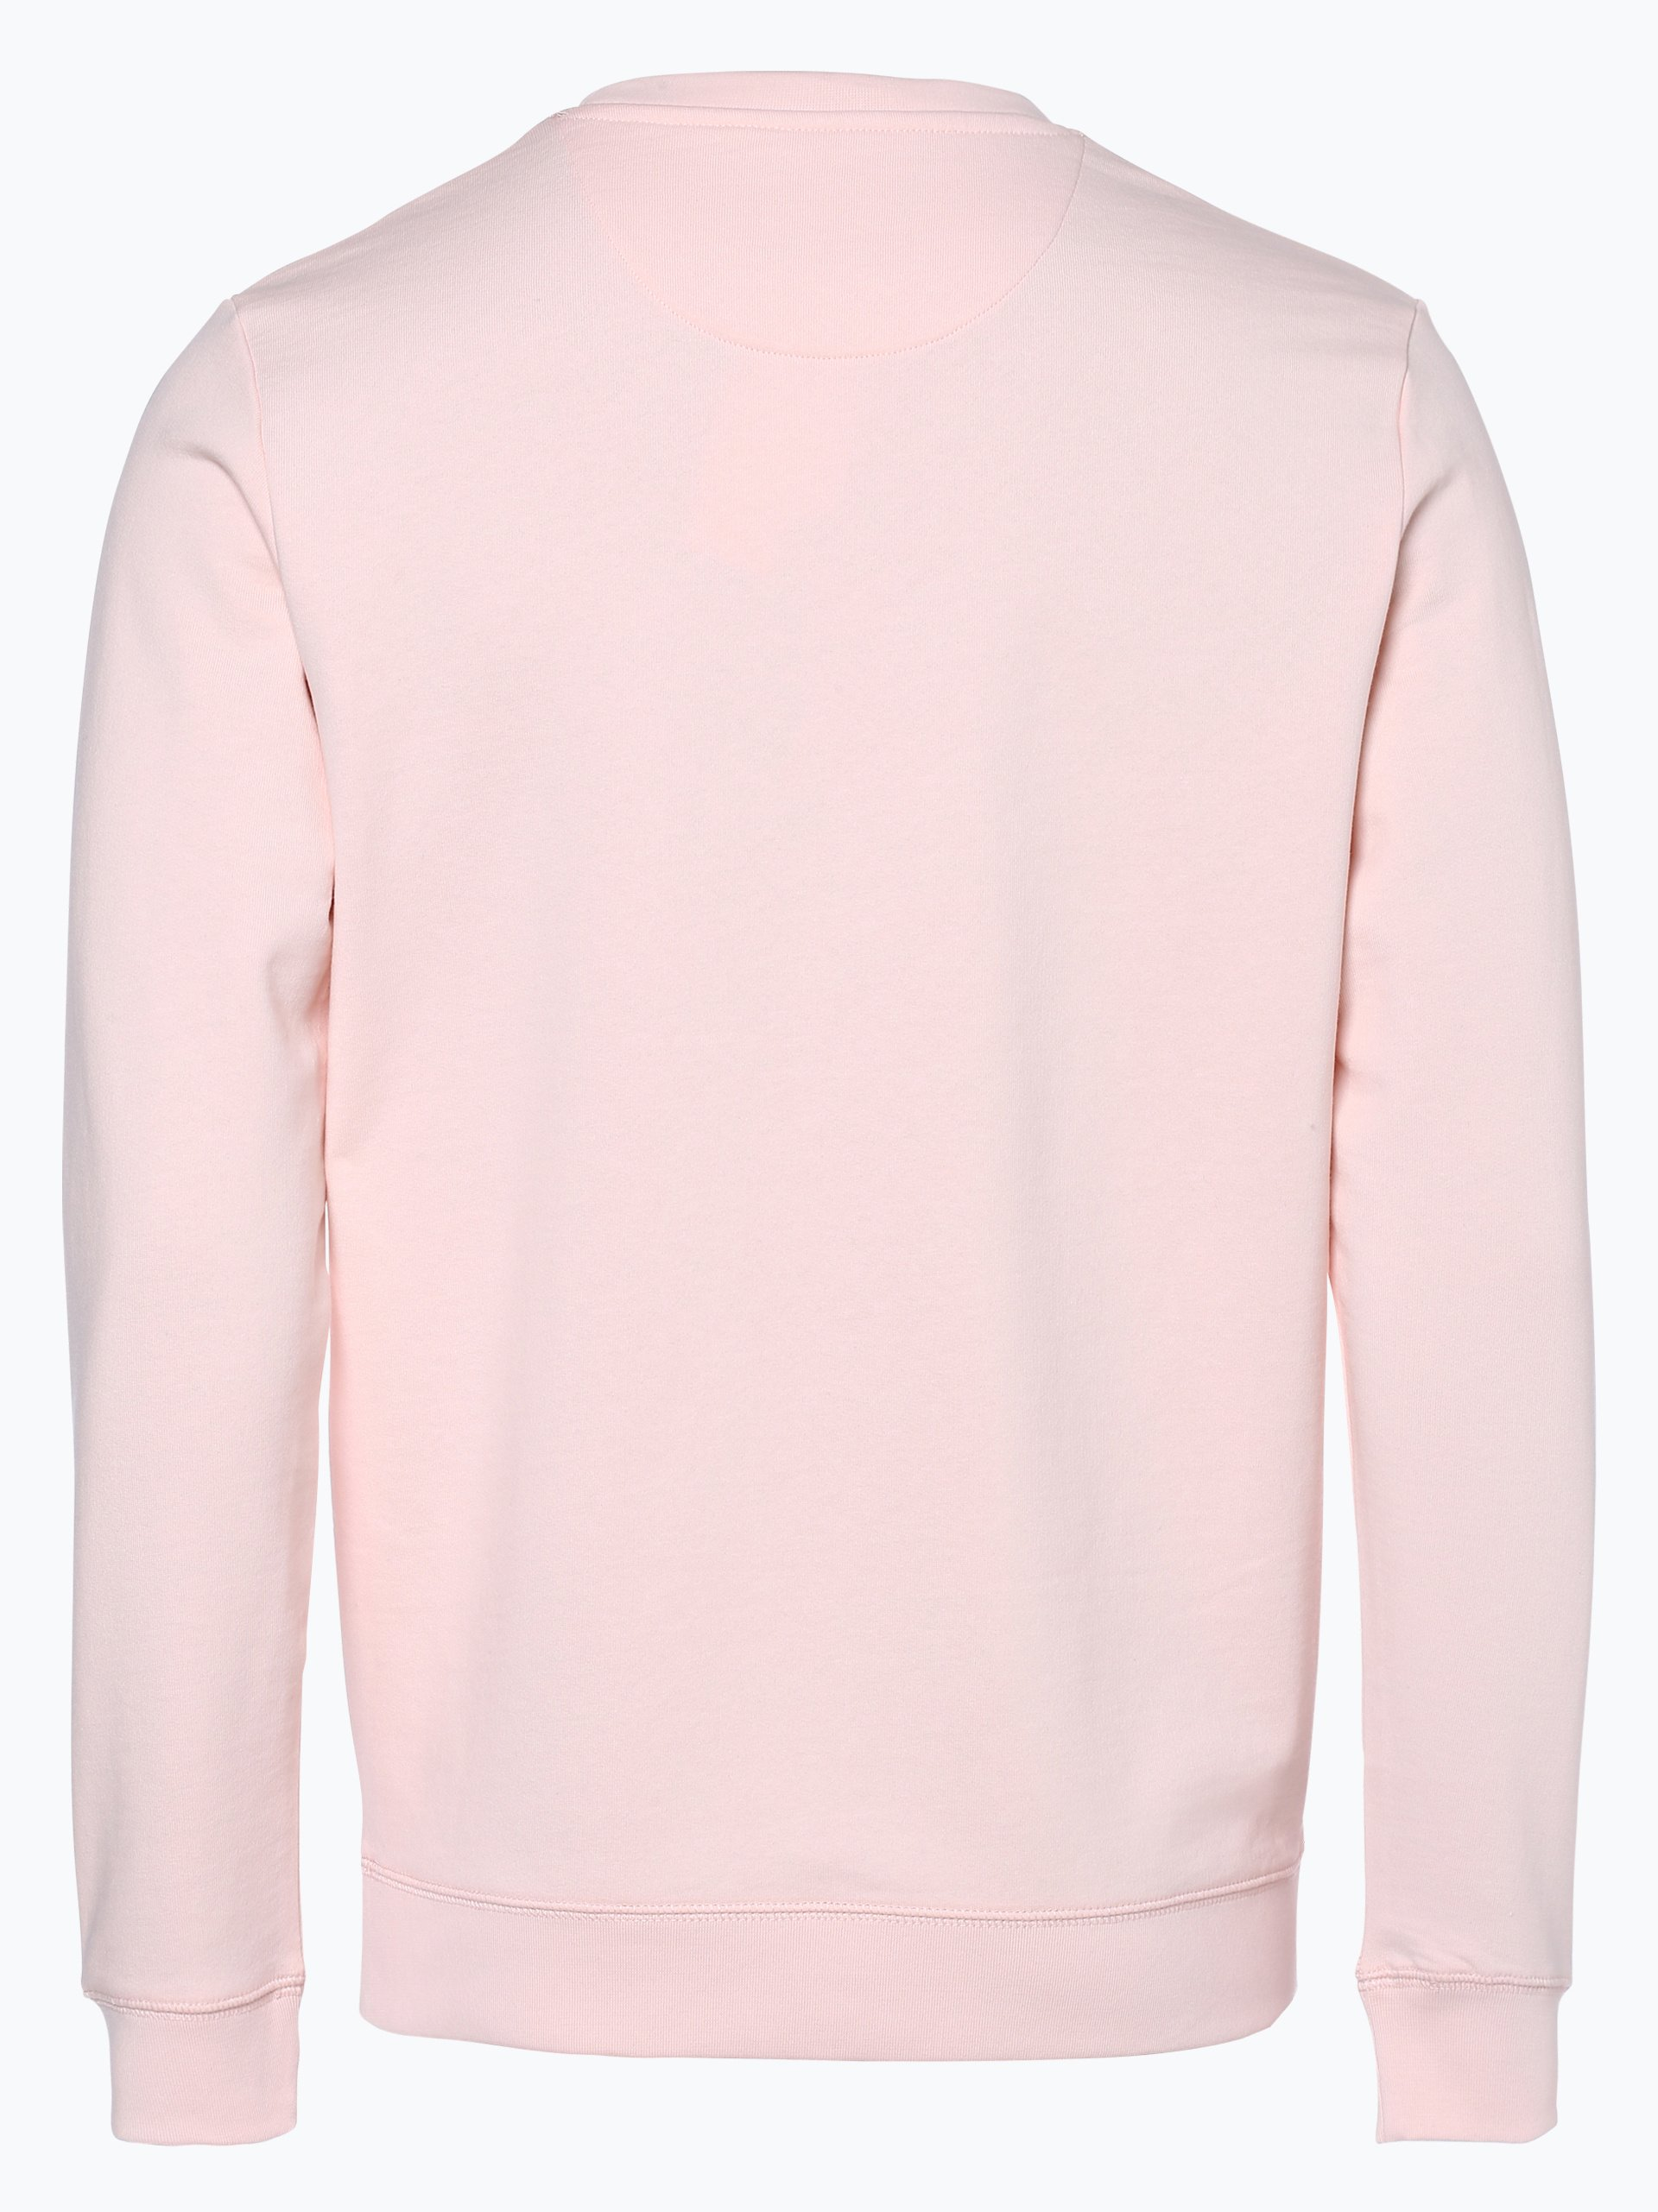 Finshley & Harding London Herren Sweatshirt